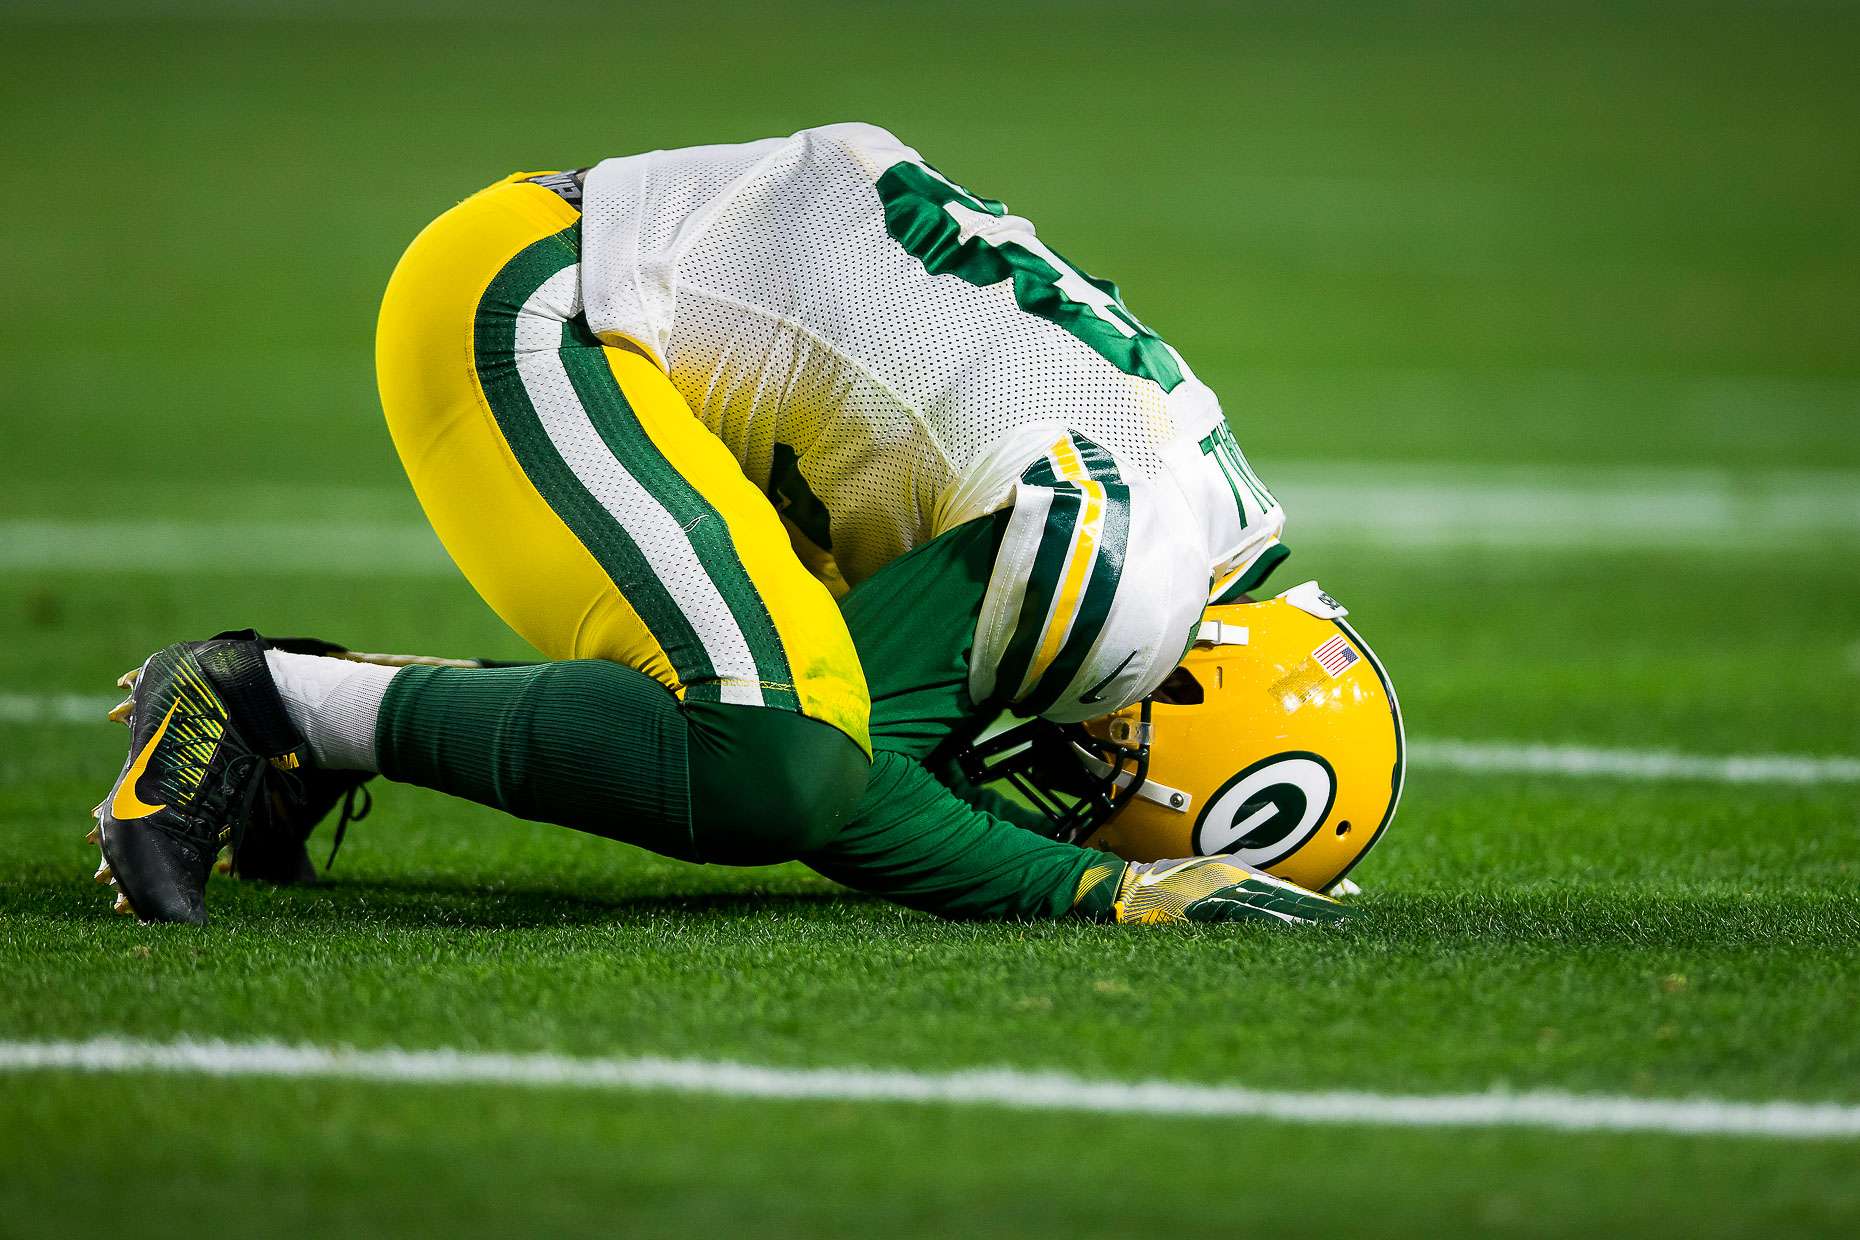 Green Bay Packers - Commercial Sports Photographer 25